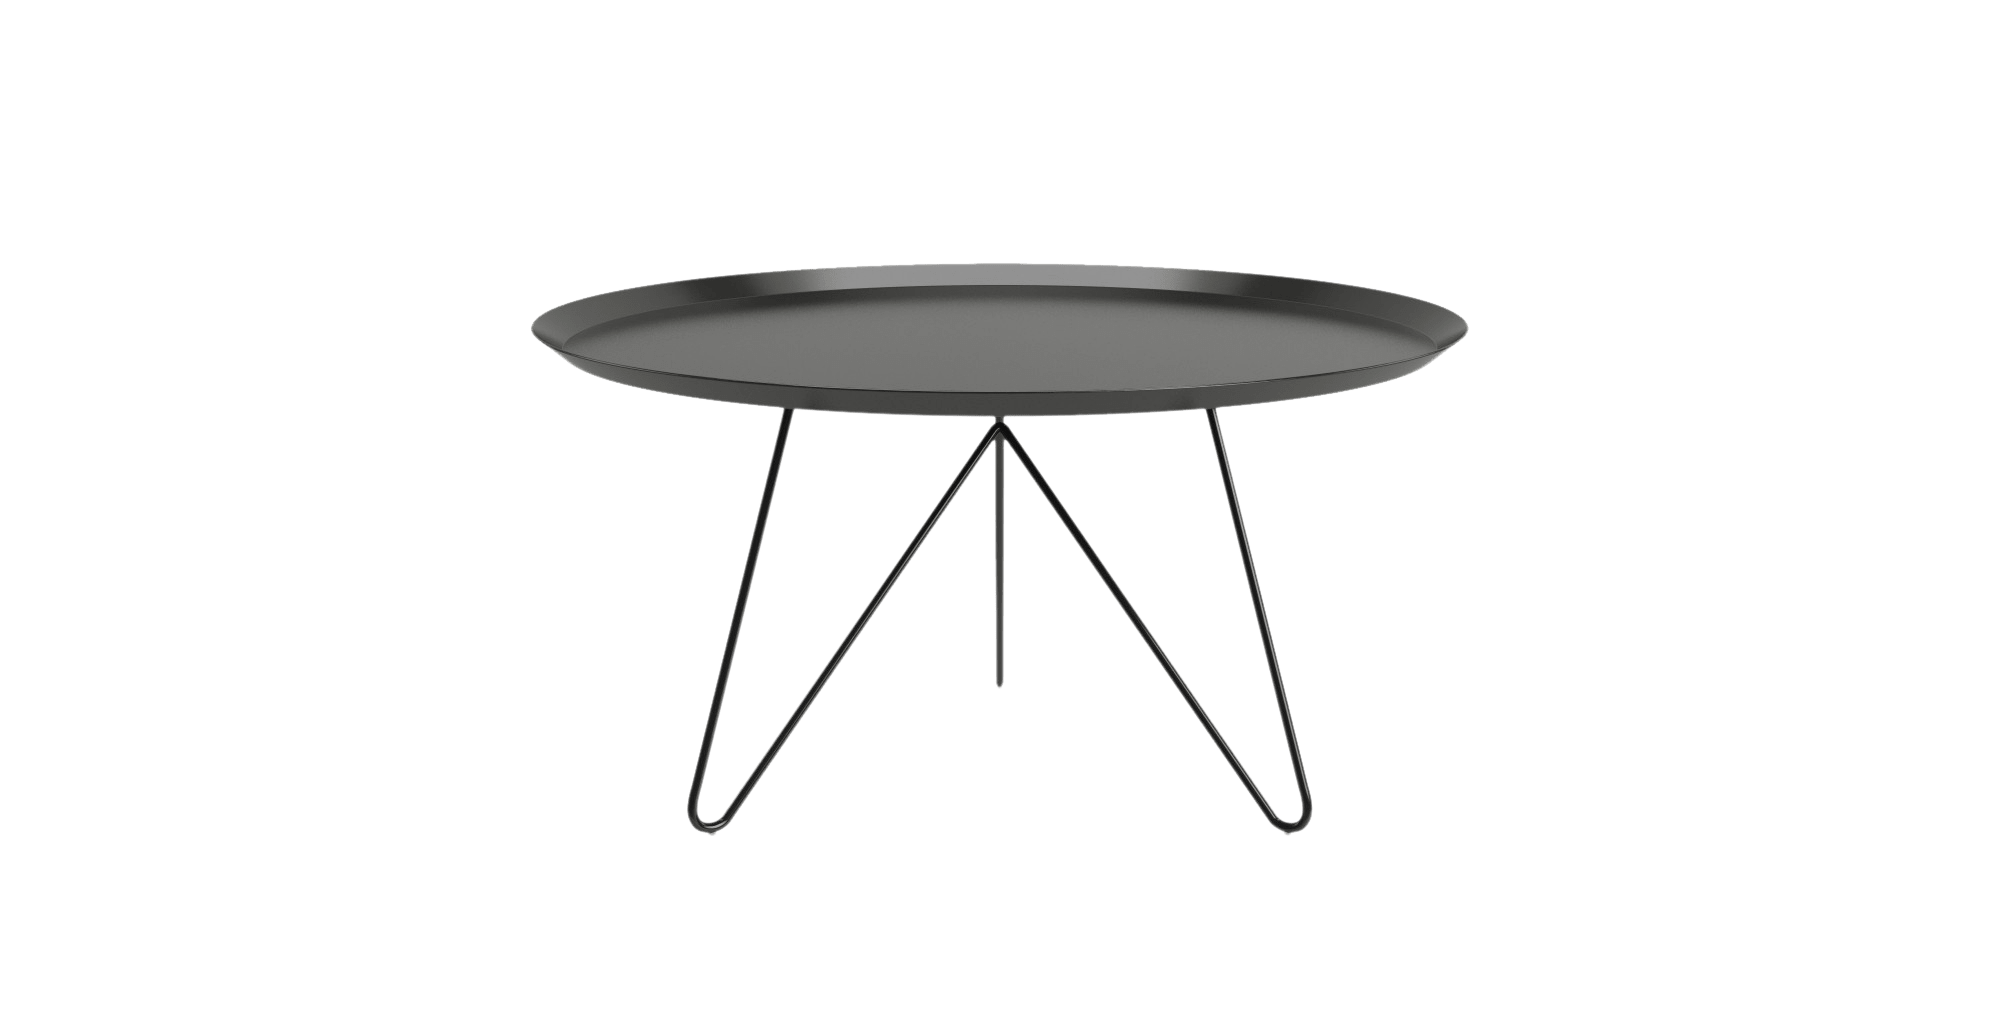 Coffee table png. Free download mart